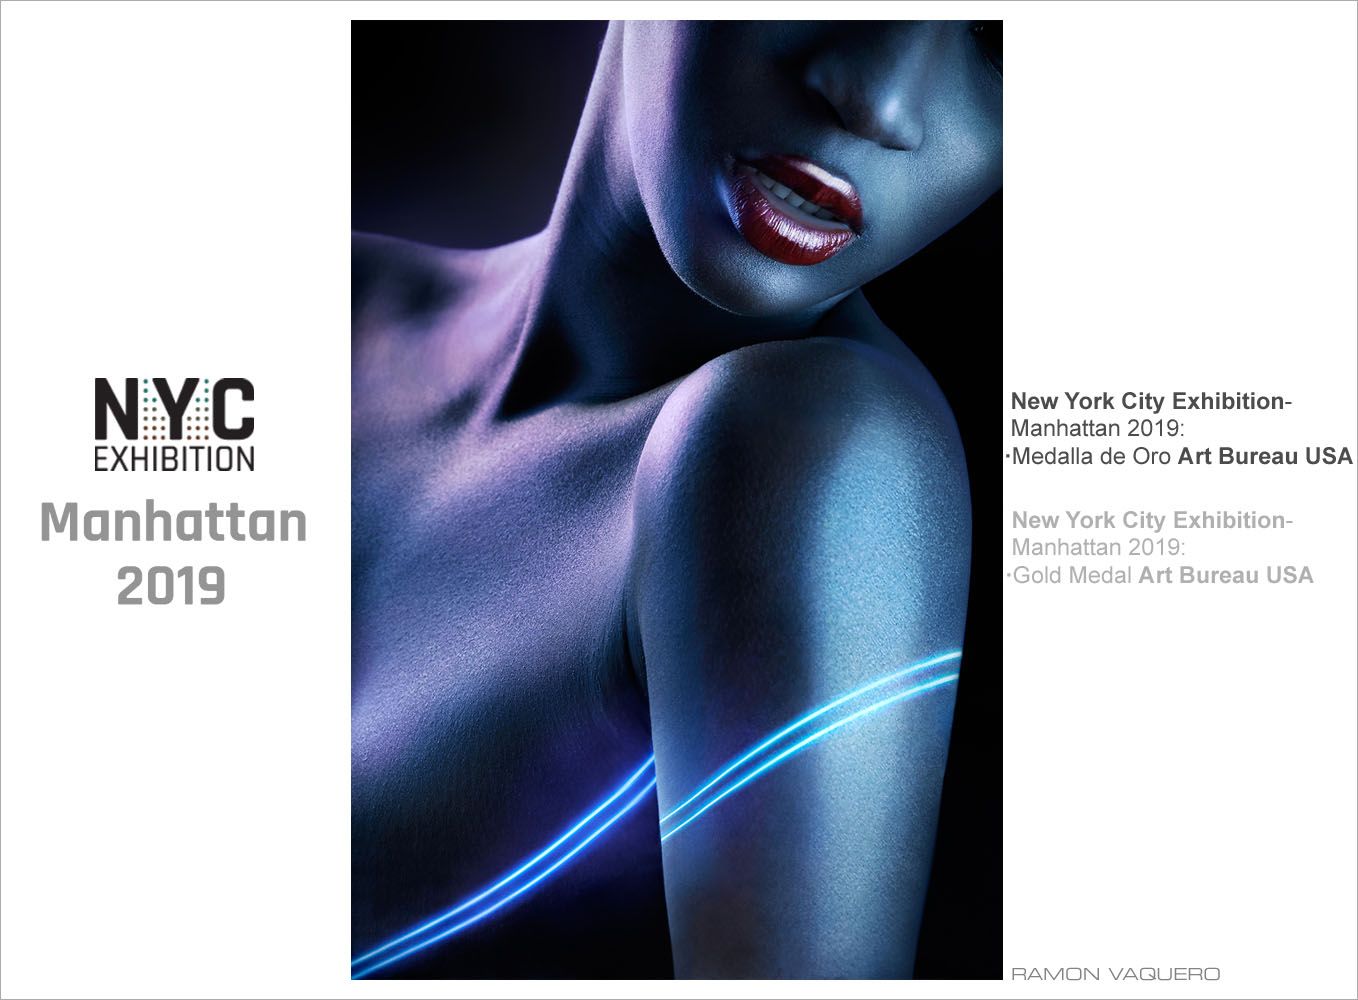 skin-and-light_ramon vaquero_NYC-exhibition-manhattan_2019_beauty_fashion